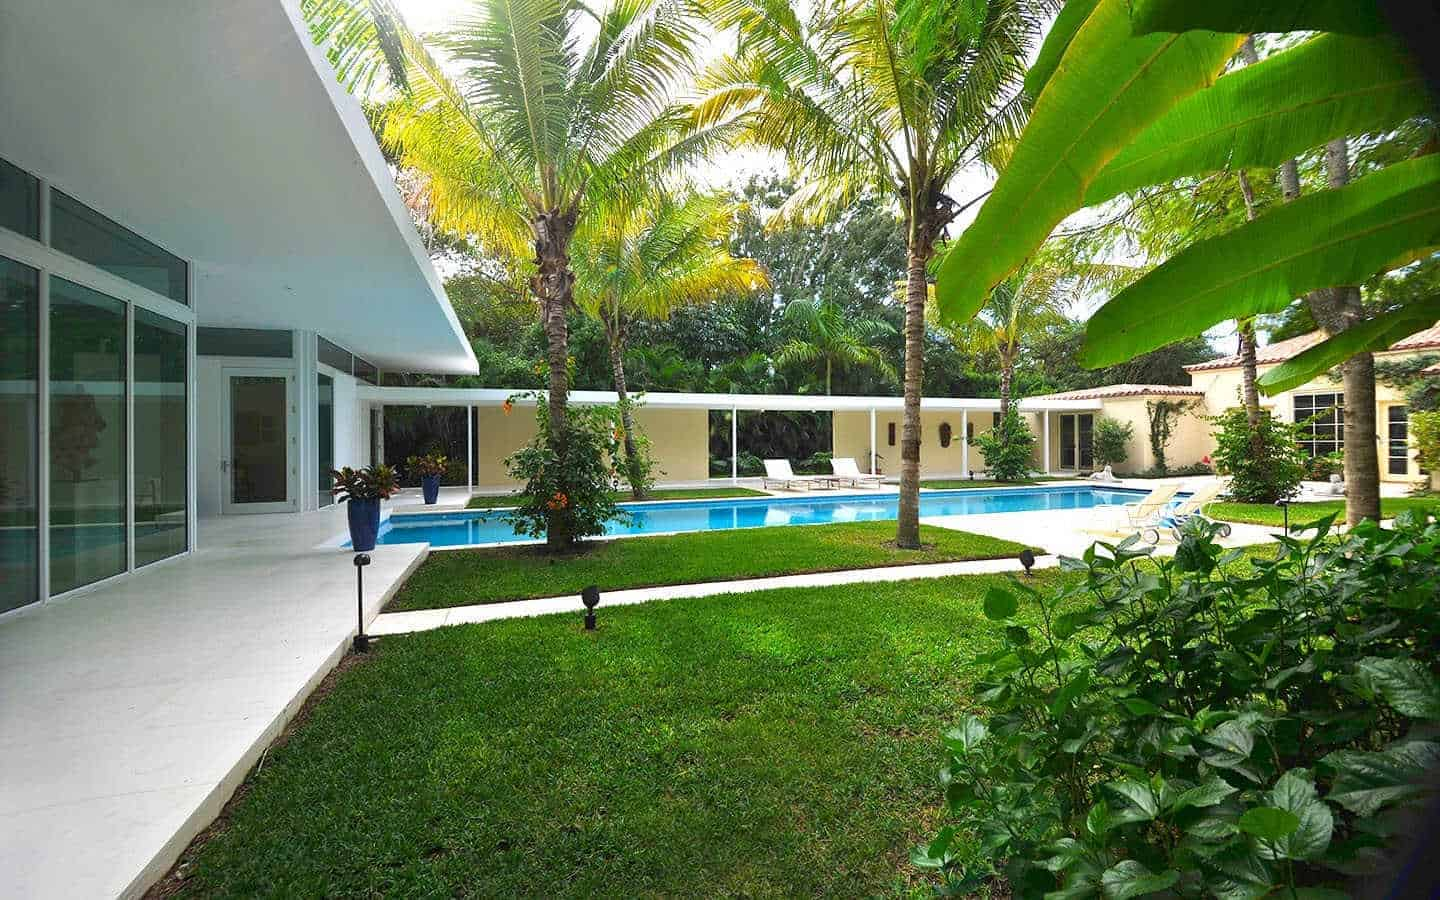 A wide modern house finished in white. It has a beautiful backyard surrounded by healthy greens.